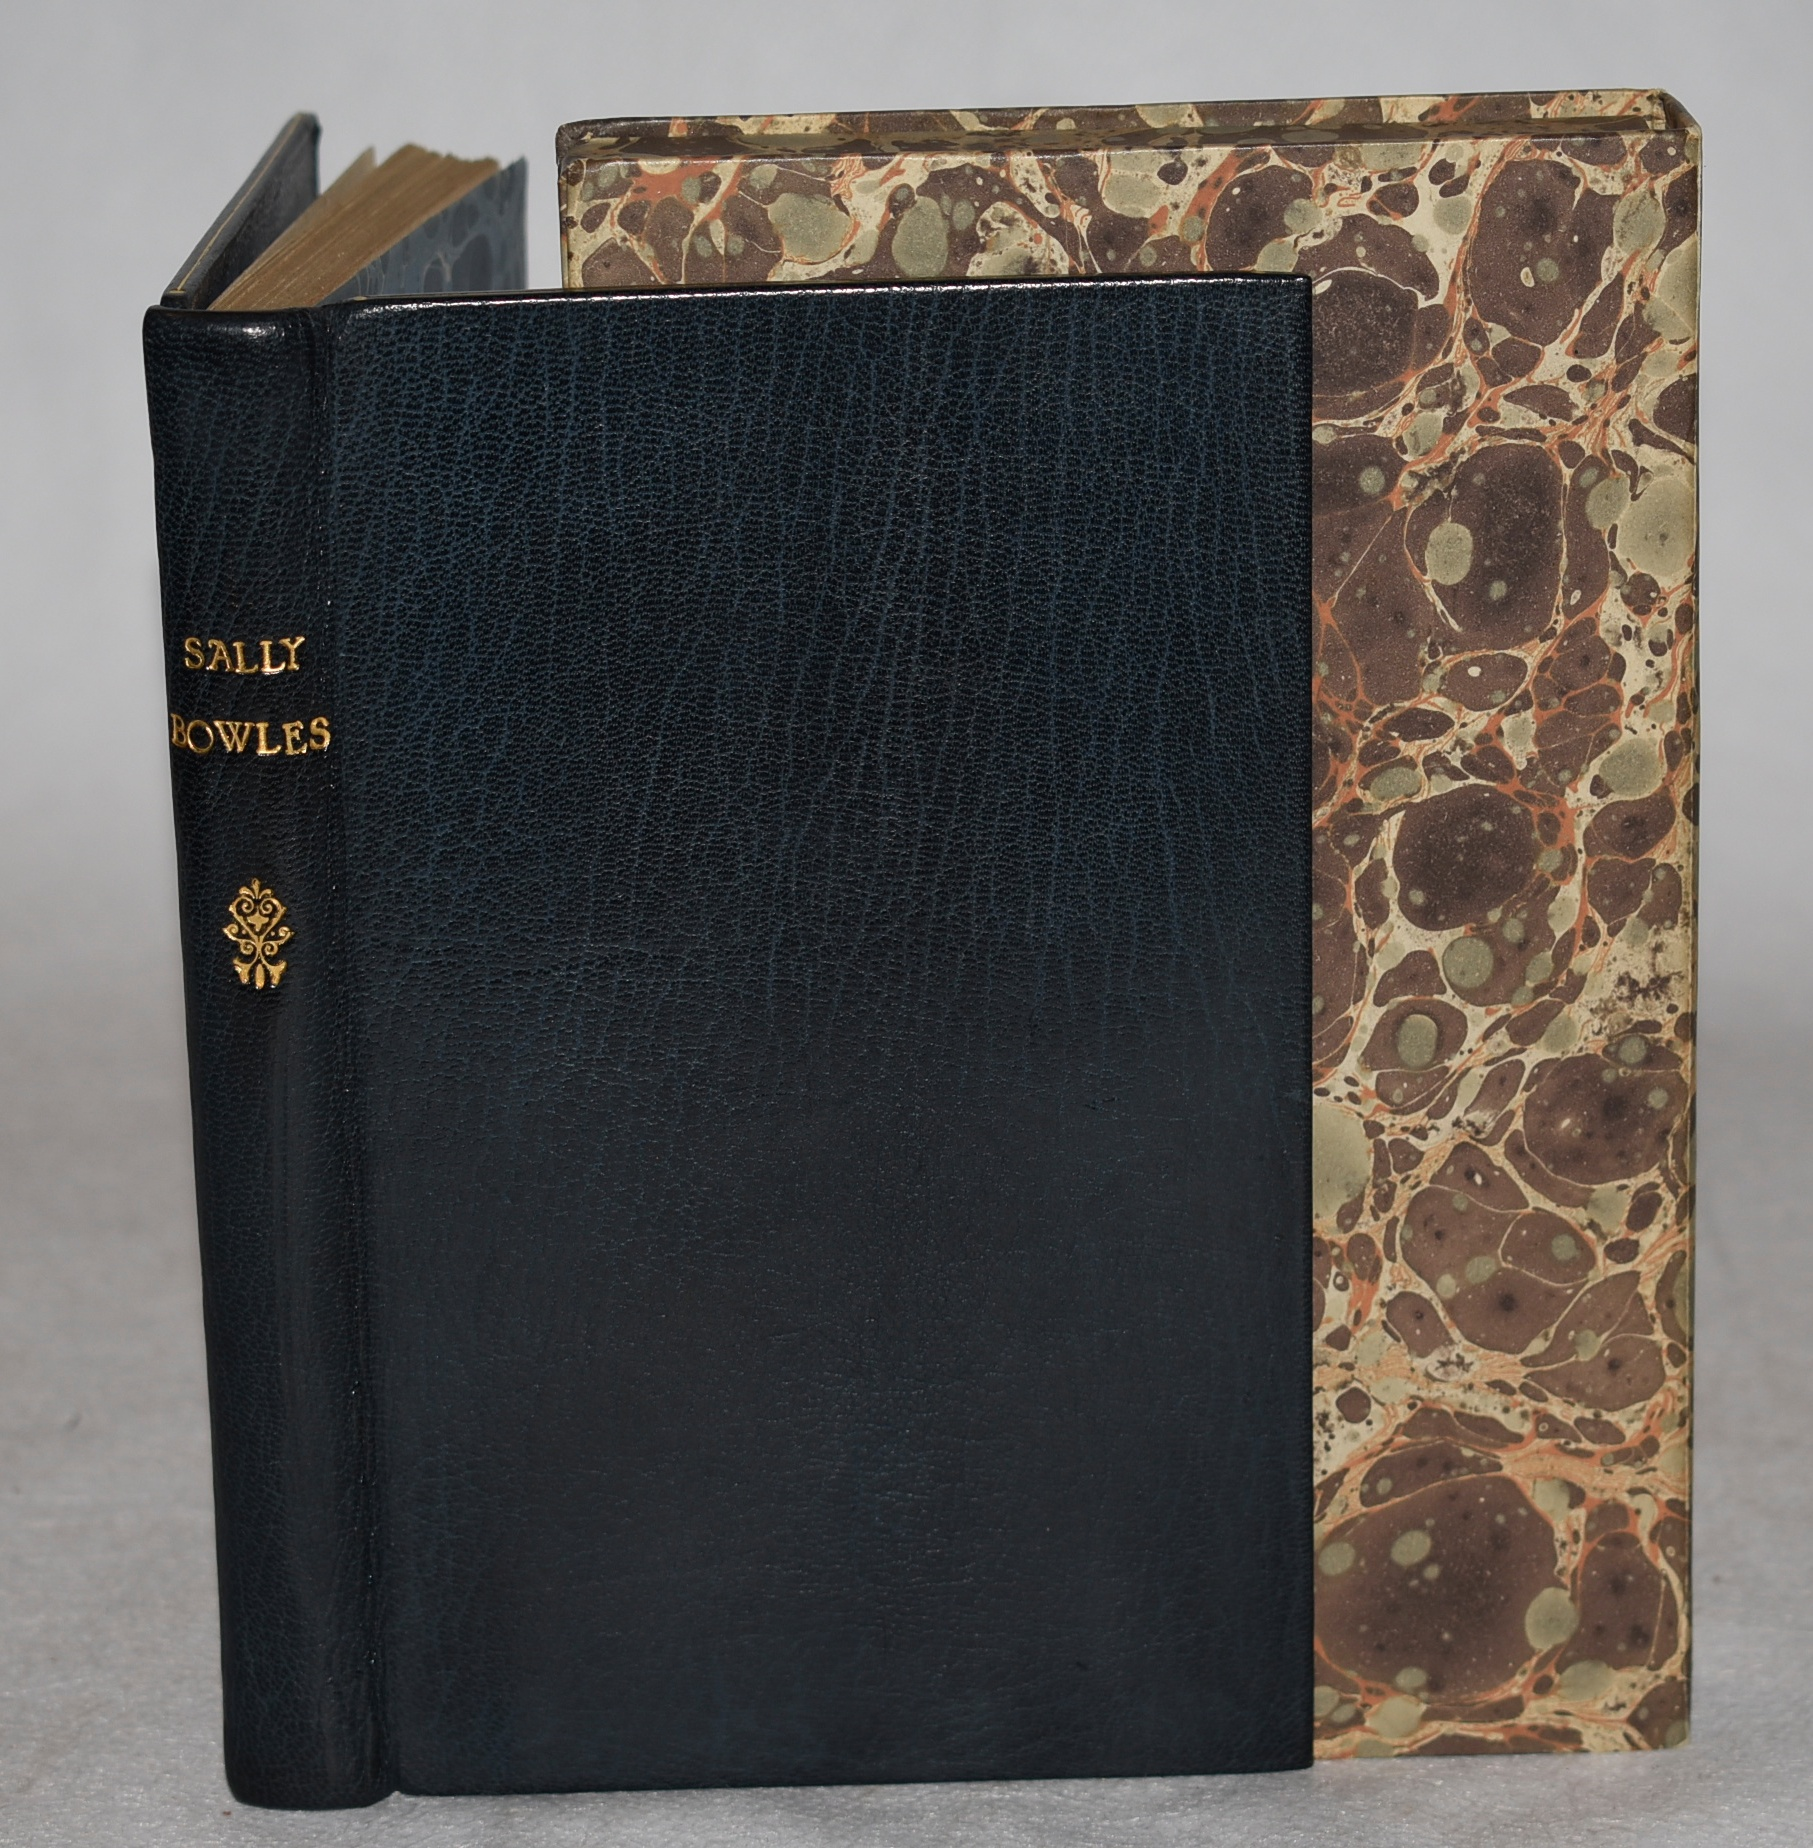 Image for Sally Bowles. Signed Copy in Fine Leather Binding. In Box Case.